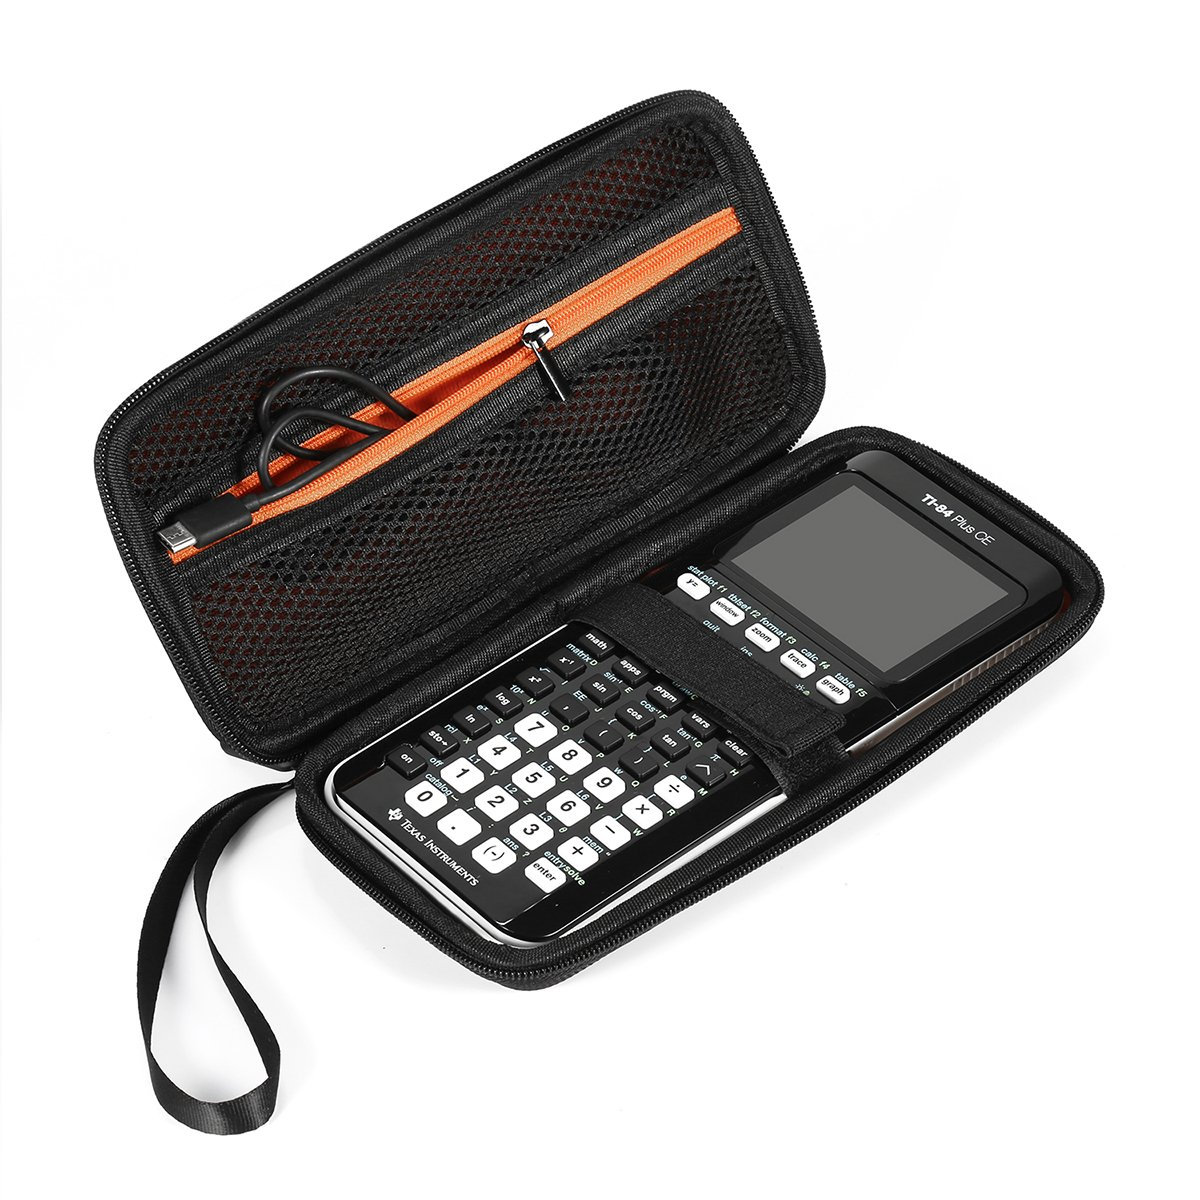 Faylapa Carrying Case Storage Travel Bag for Graphing Calculator Texas Instruments TI-83 Plus TI-84 Plus CE TI-89 Protective Pouch Black by Faylapa